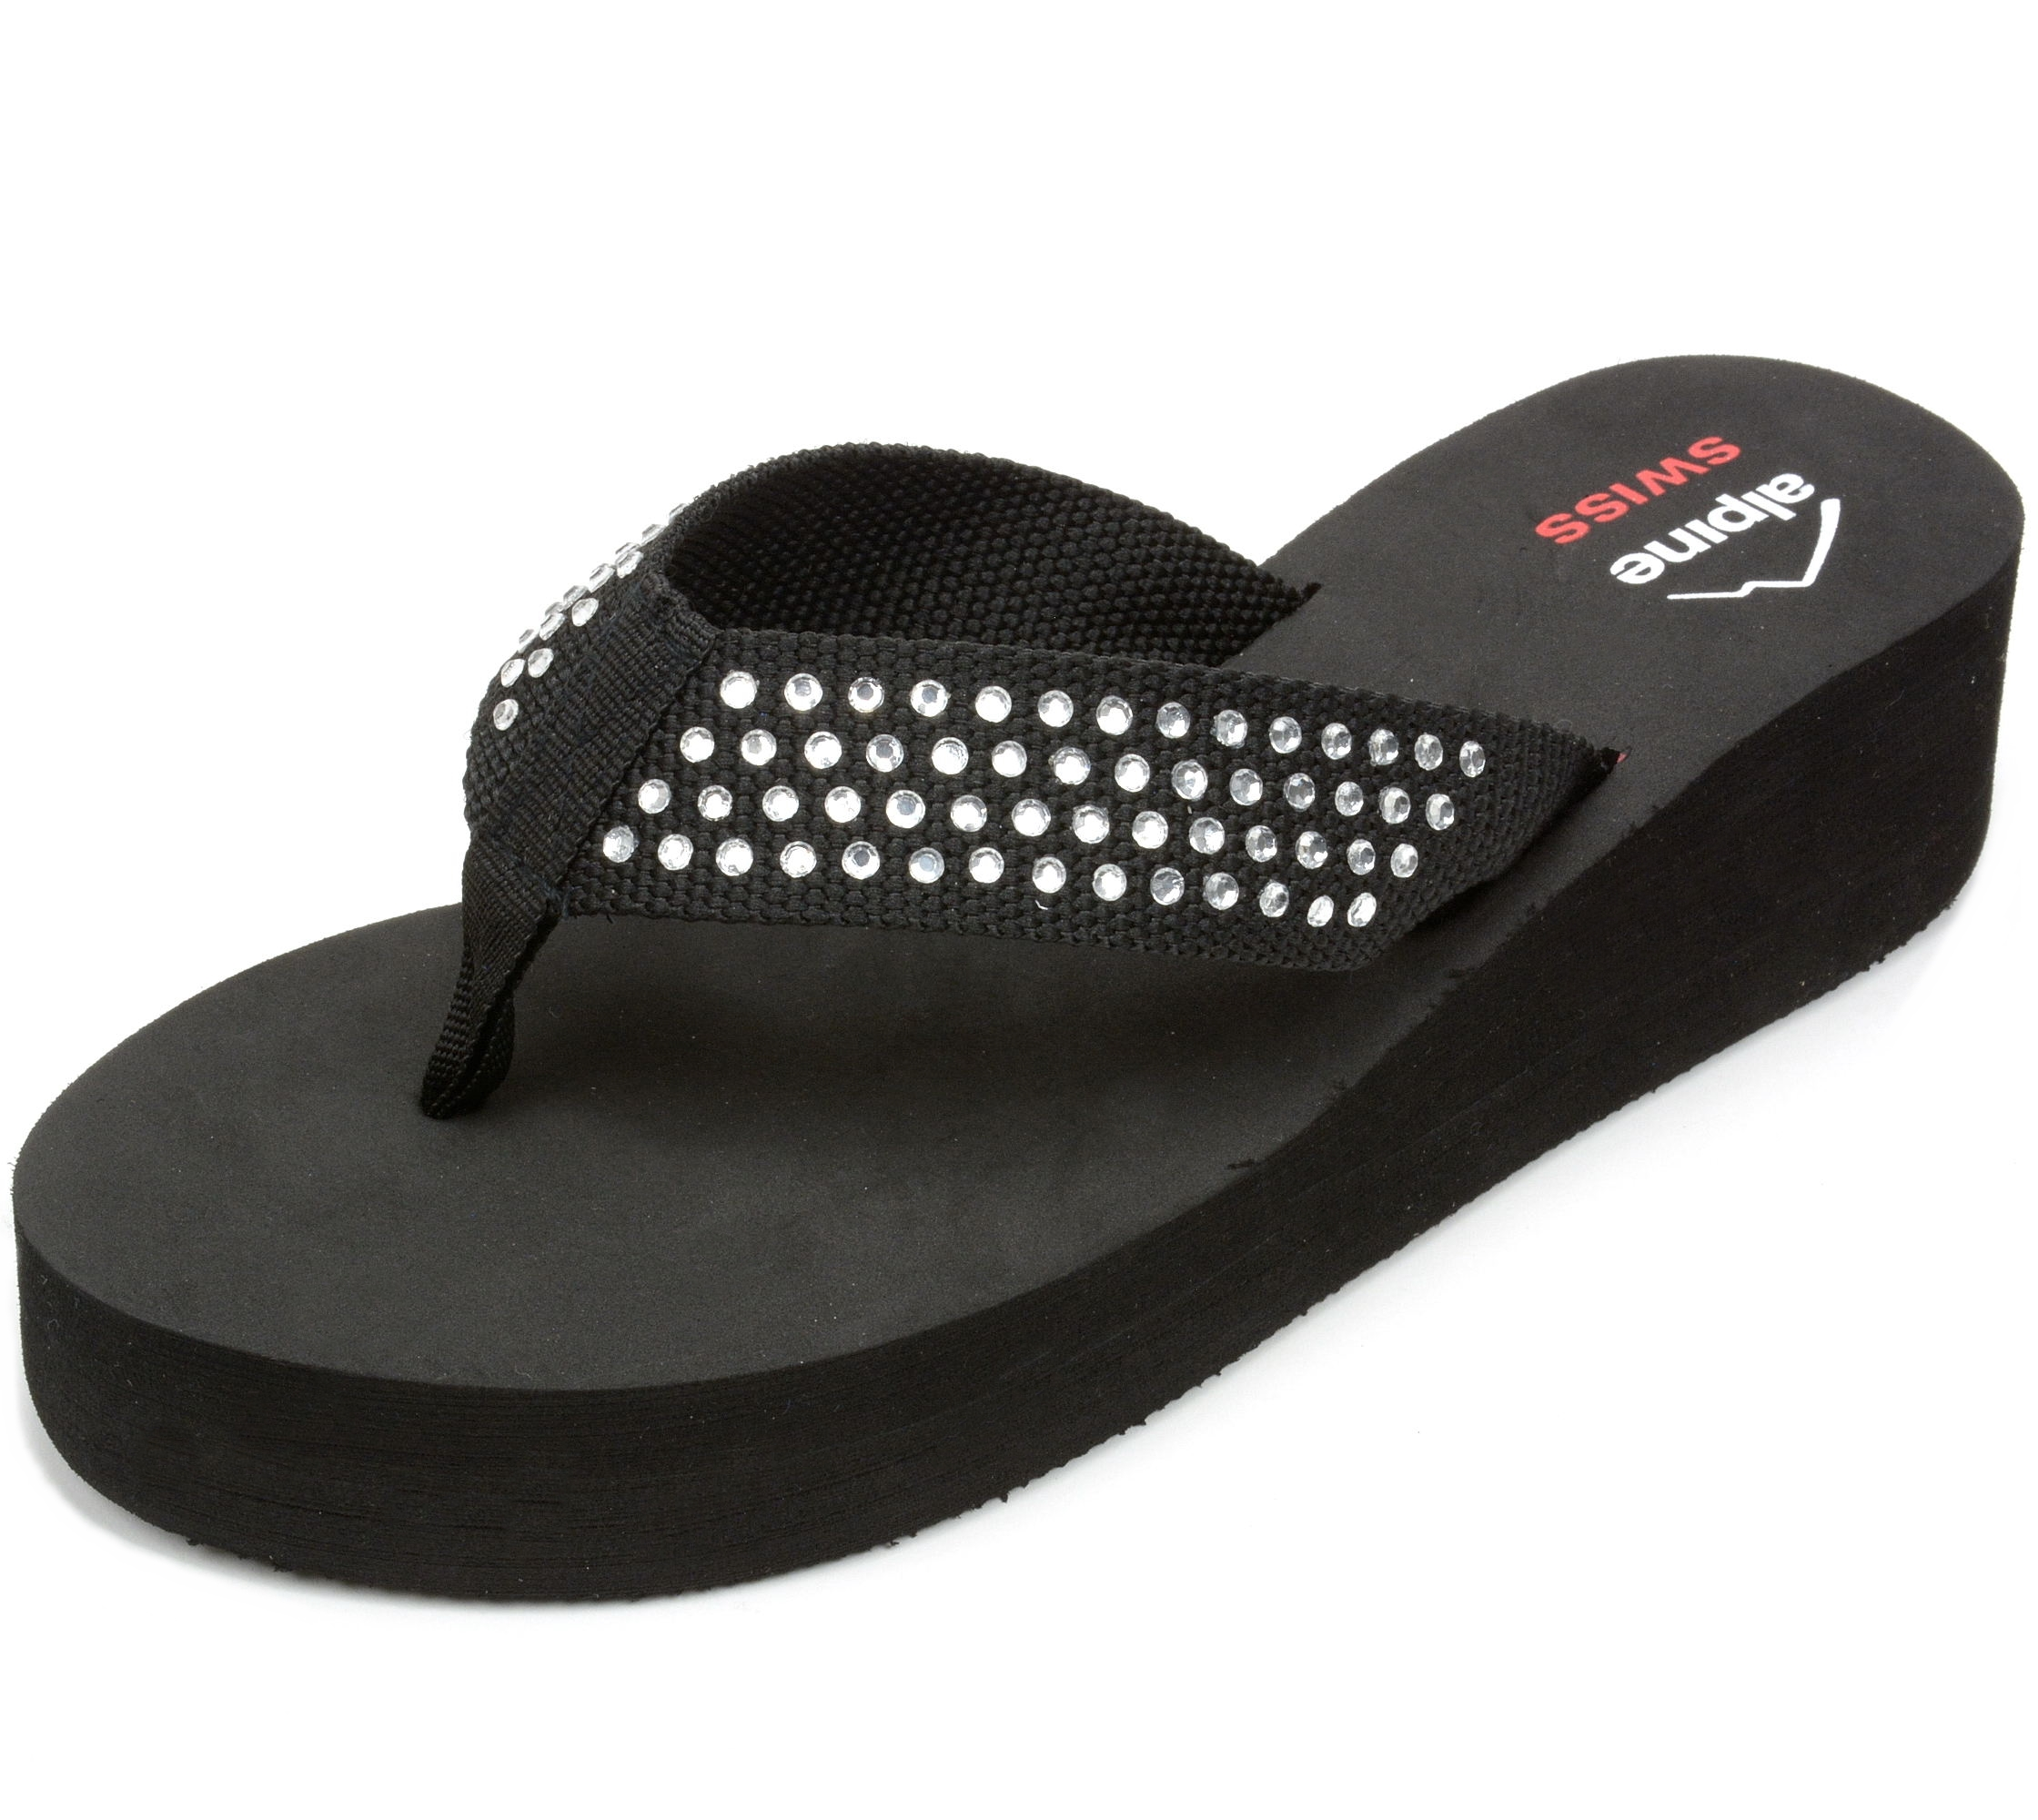 Alpine Swiss - Alpine Swiss Womens Flip Flops Thong -8383